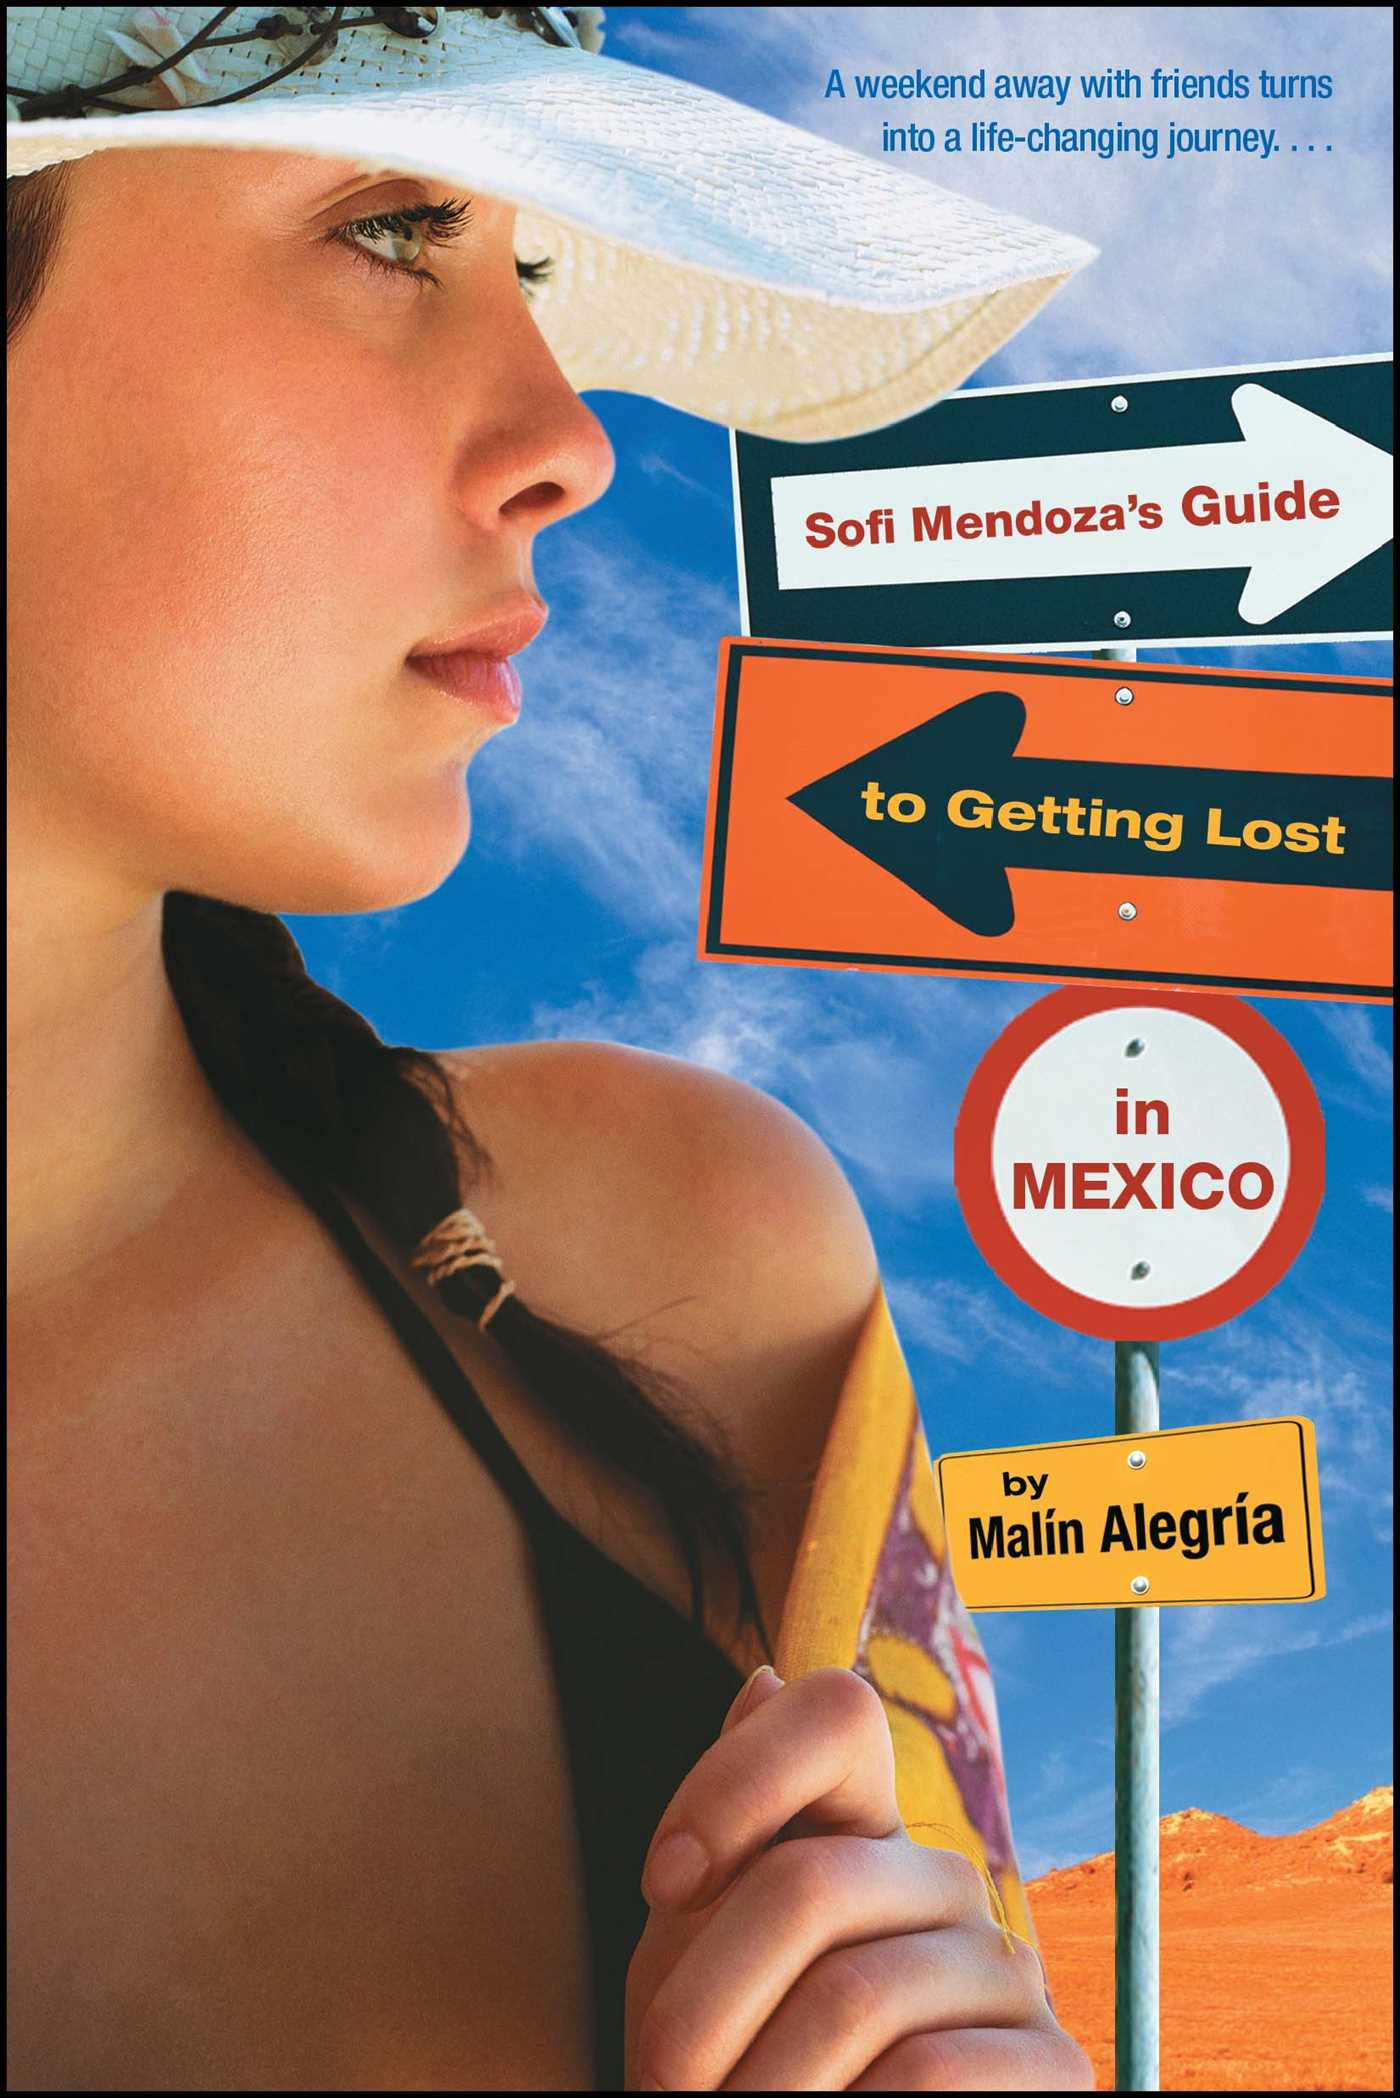 Sofi mendozas guide to getting lost in mexico 9780689878121 hr